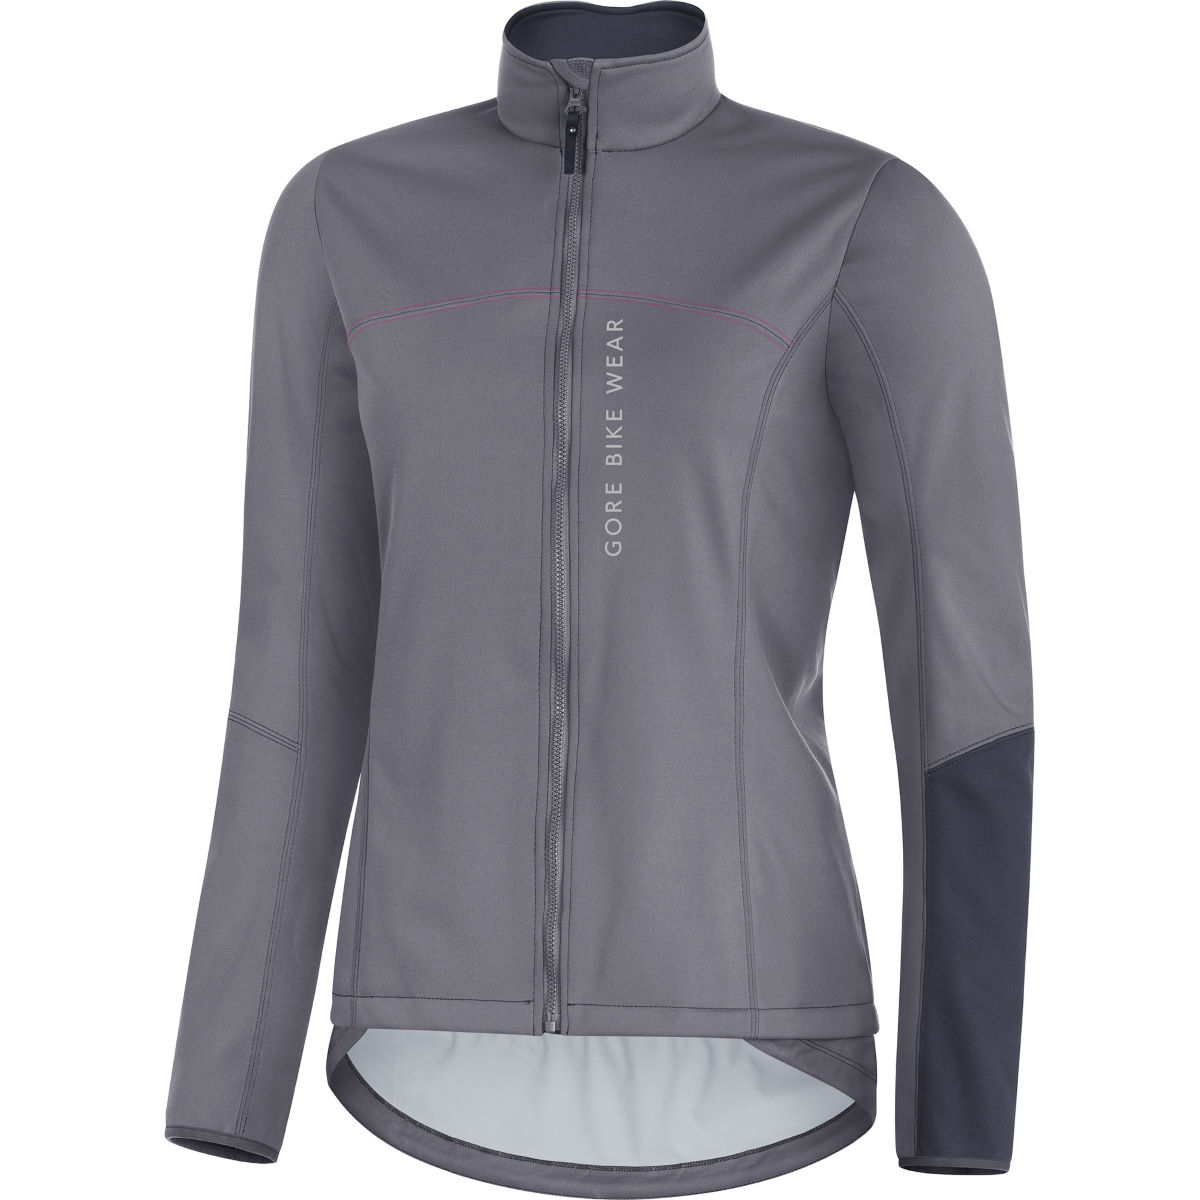 Veste Femme Gore Bike Wear Power GWS SO - X Small  Vestes